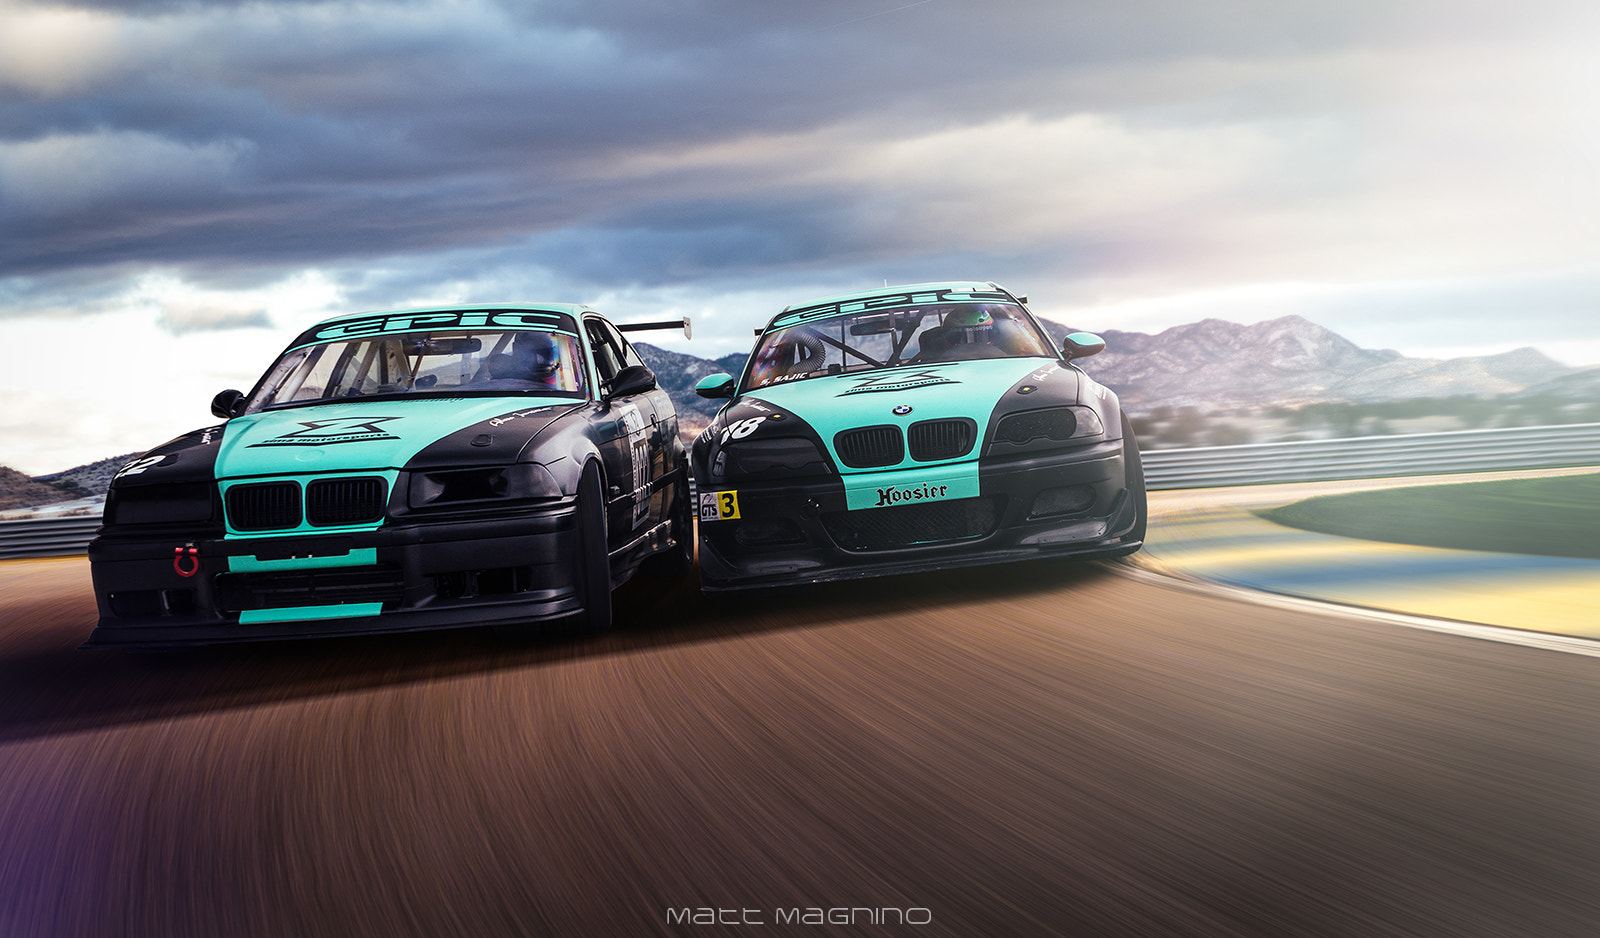 Photograph Battling for the Lead: Zima Motorsports M3s by Matt Magnino on 500px